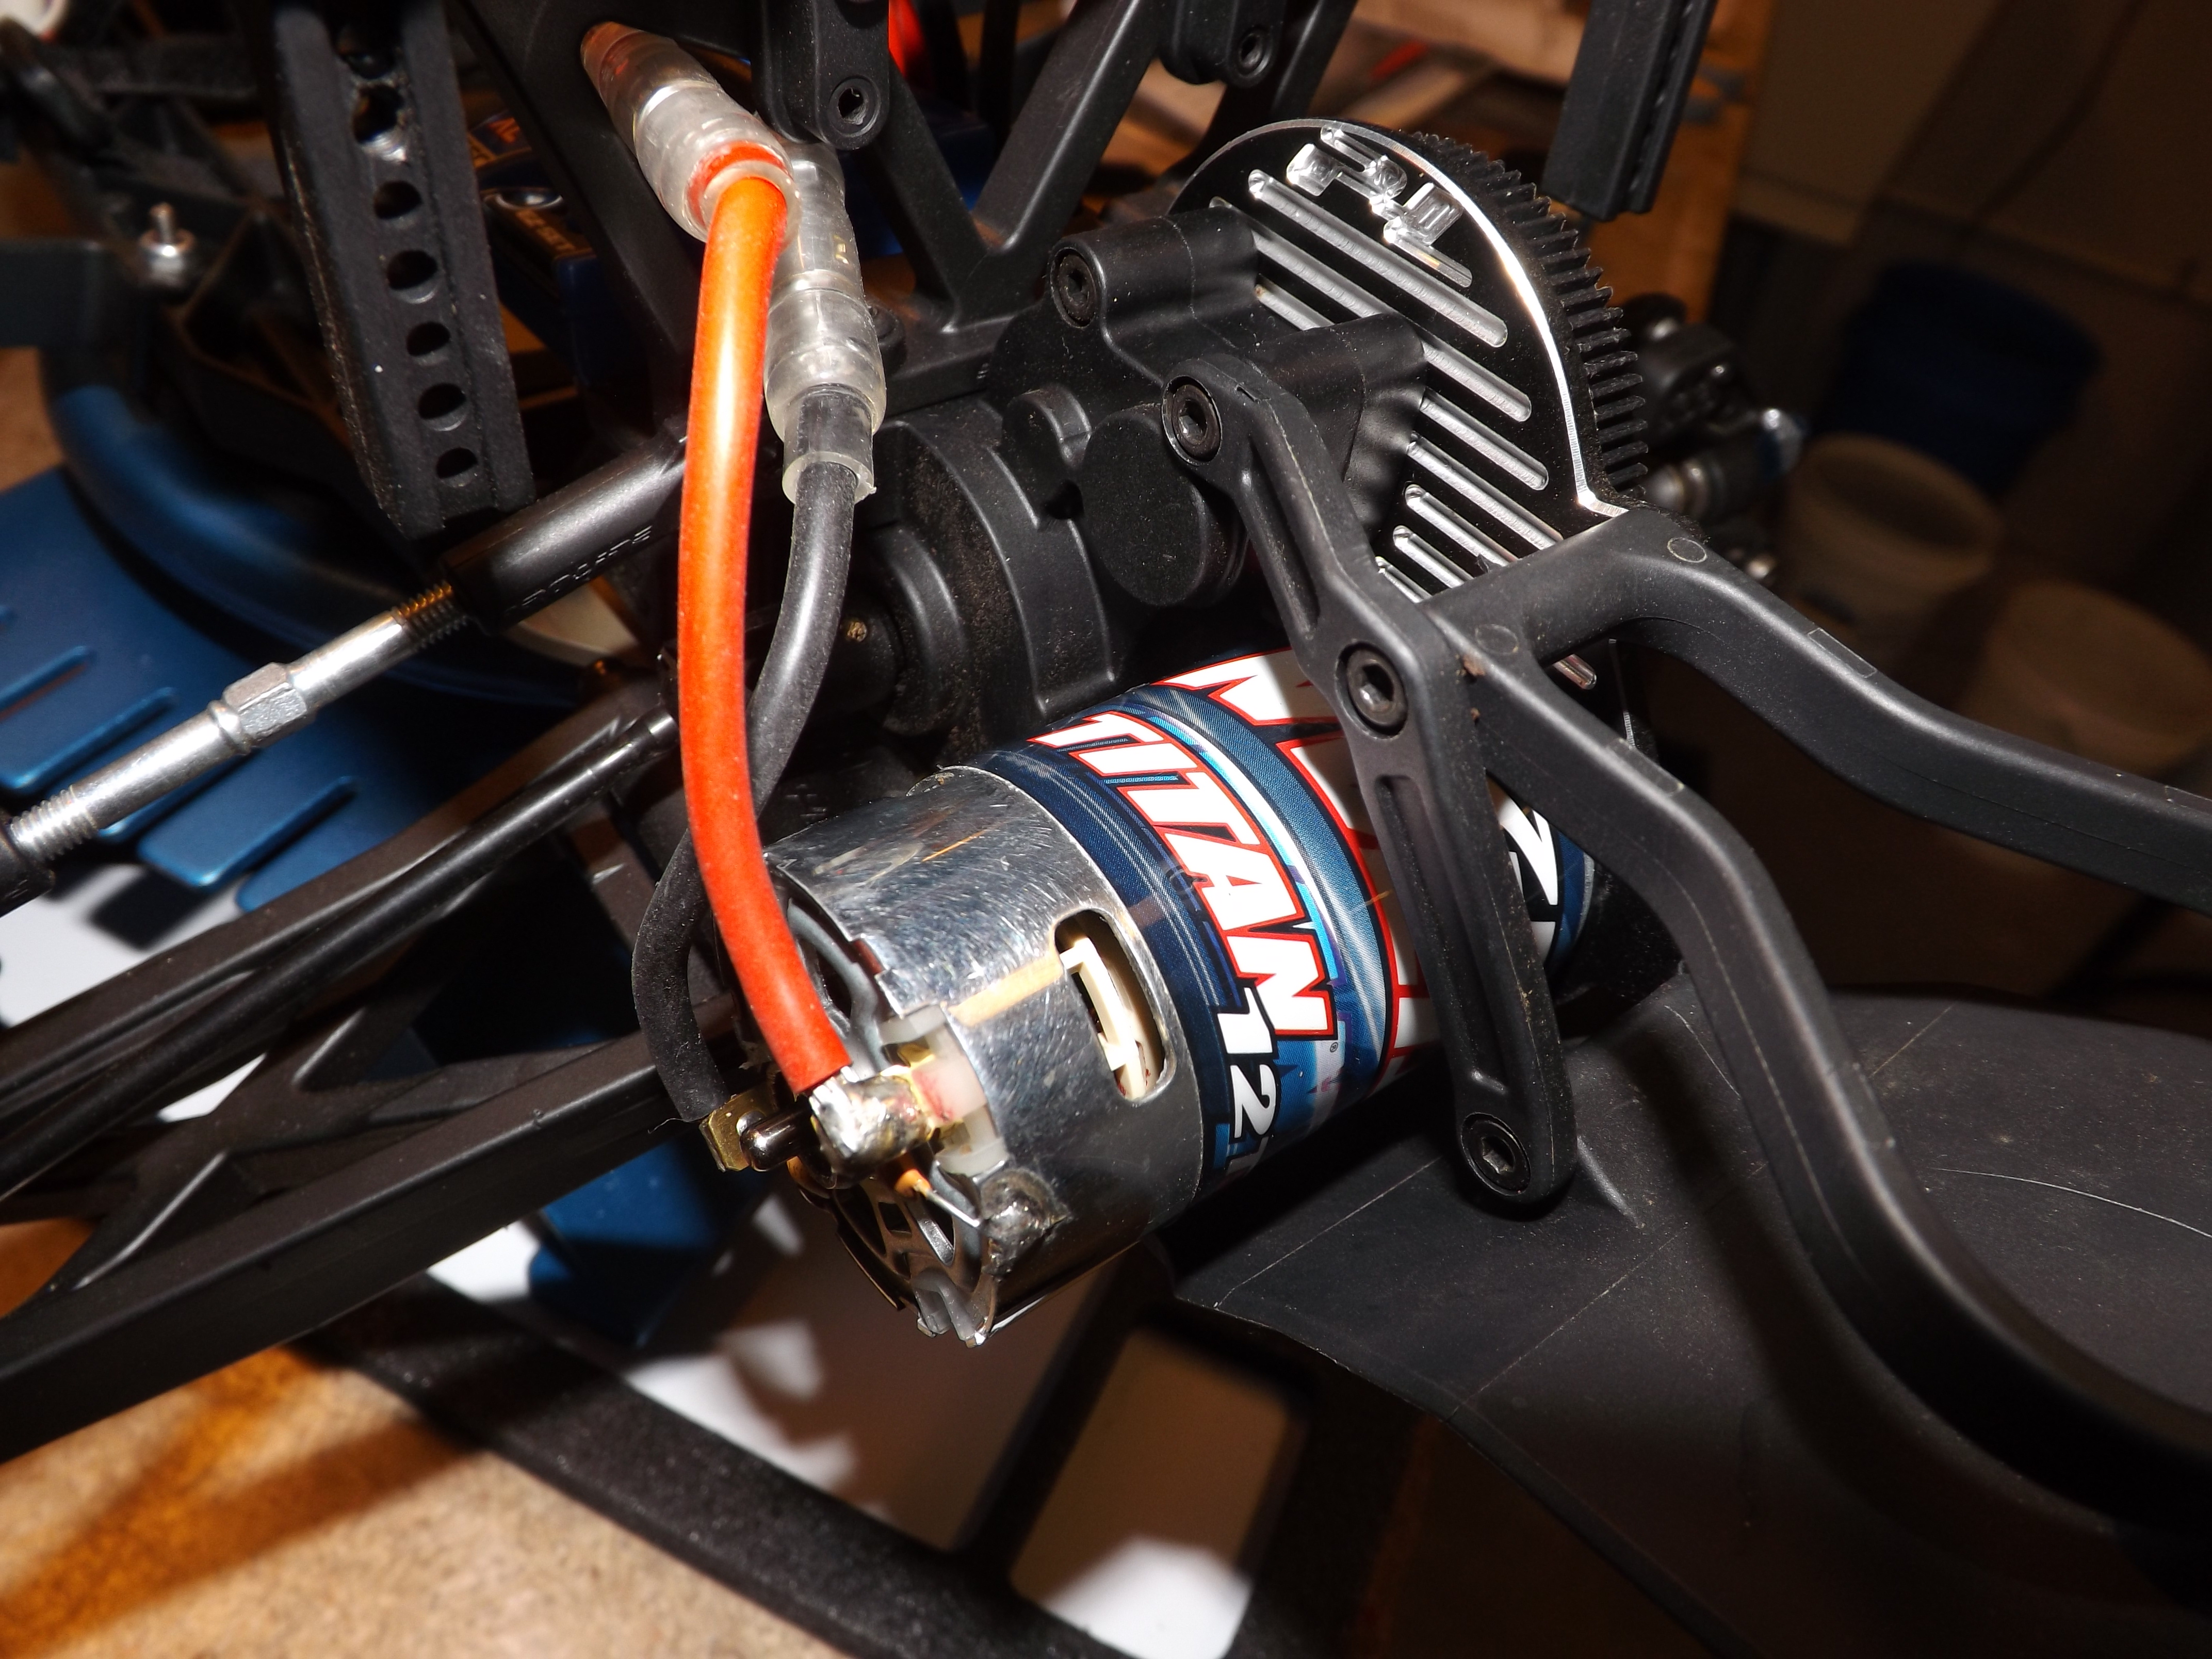 The Titan 12t Motor can be used in almost any RC truck as long as you have a brushed ESC that will work with it. Most use the Traxxas ESC's with it.